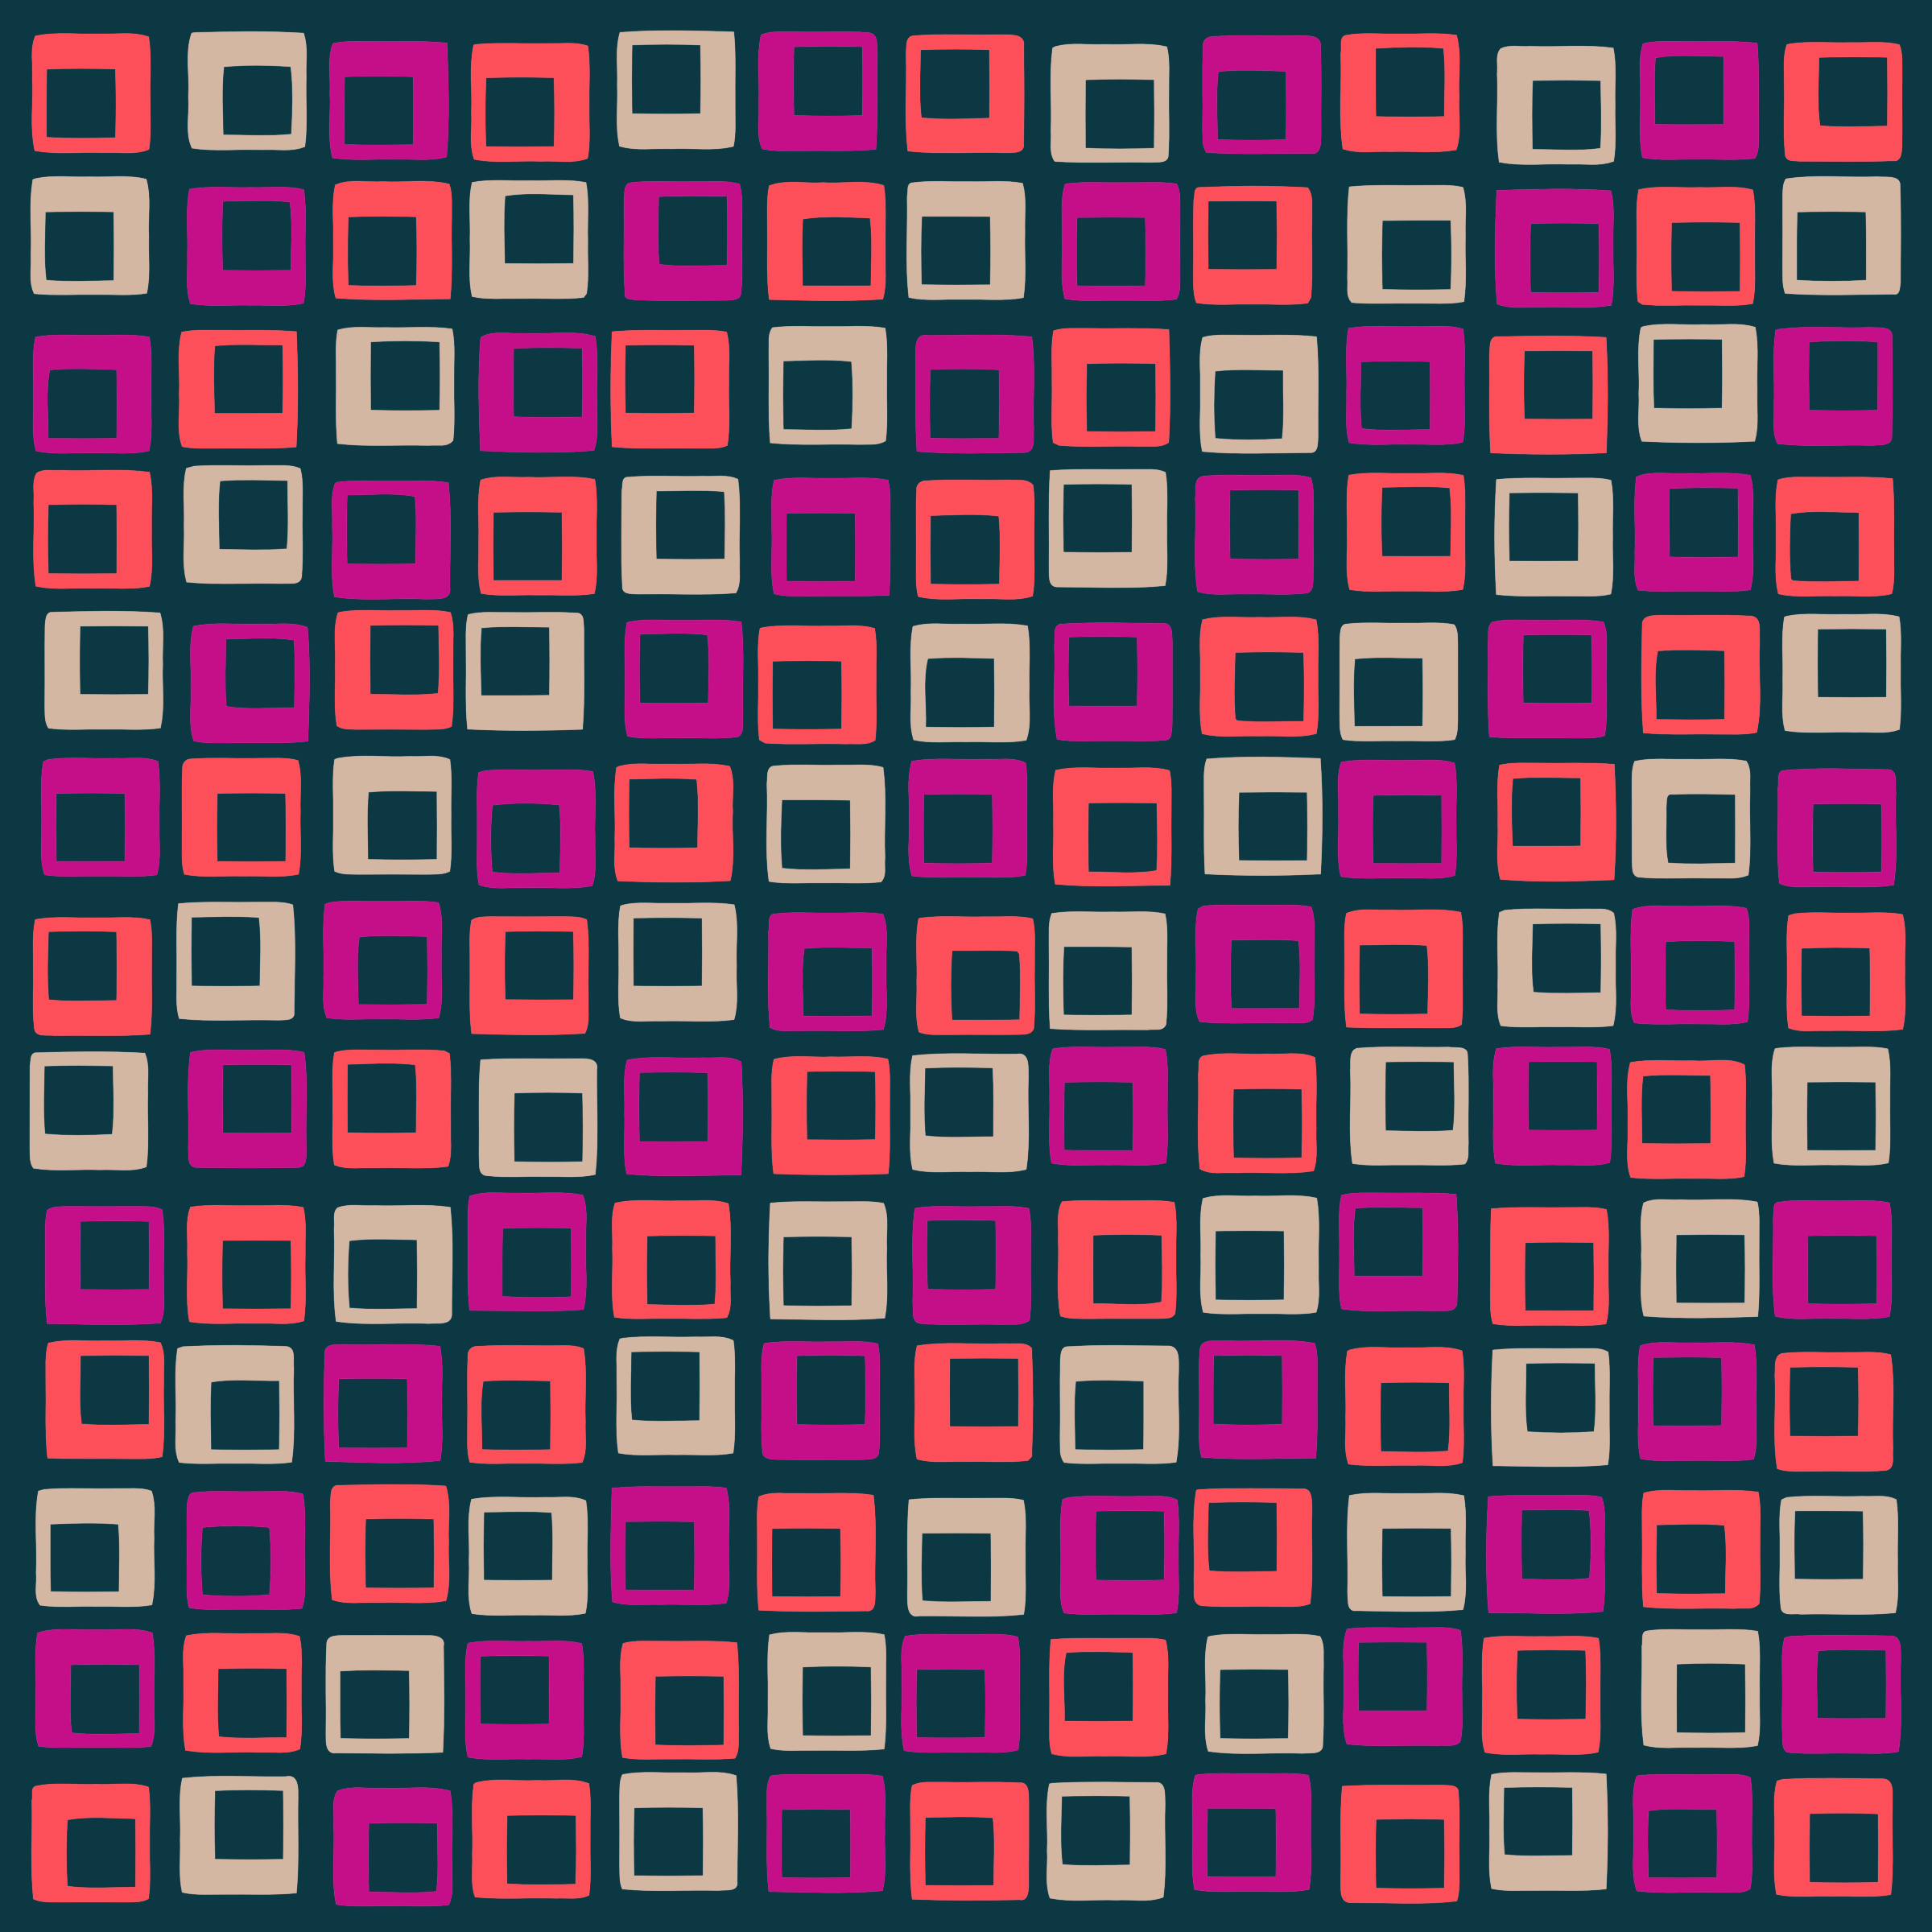 Abstract Squares 2 by GDJ